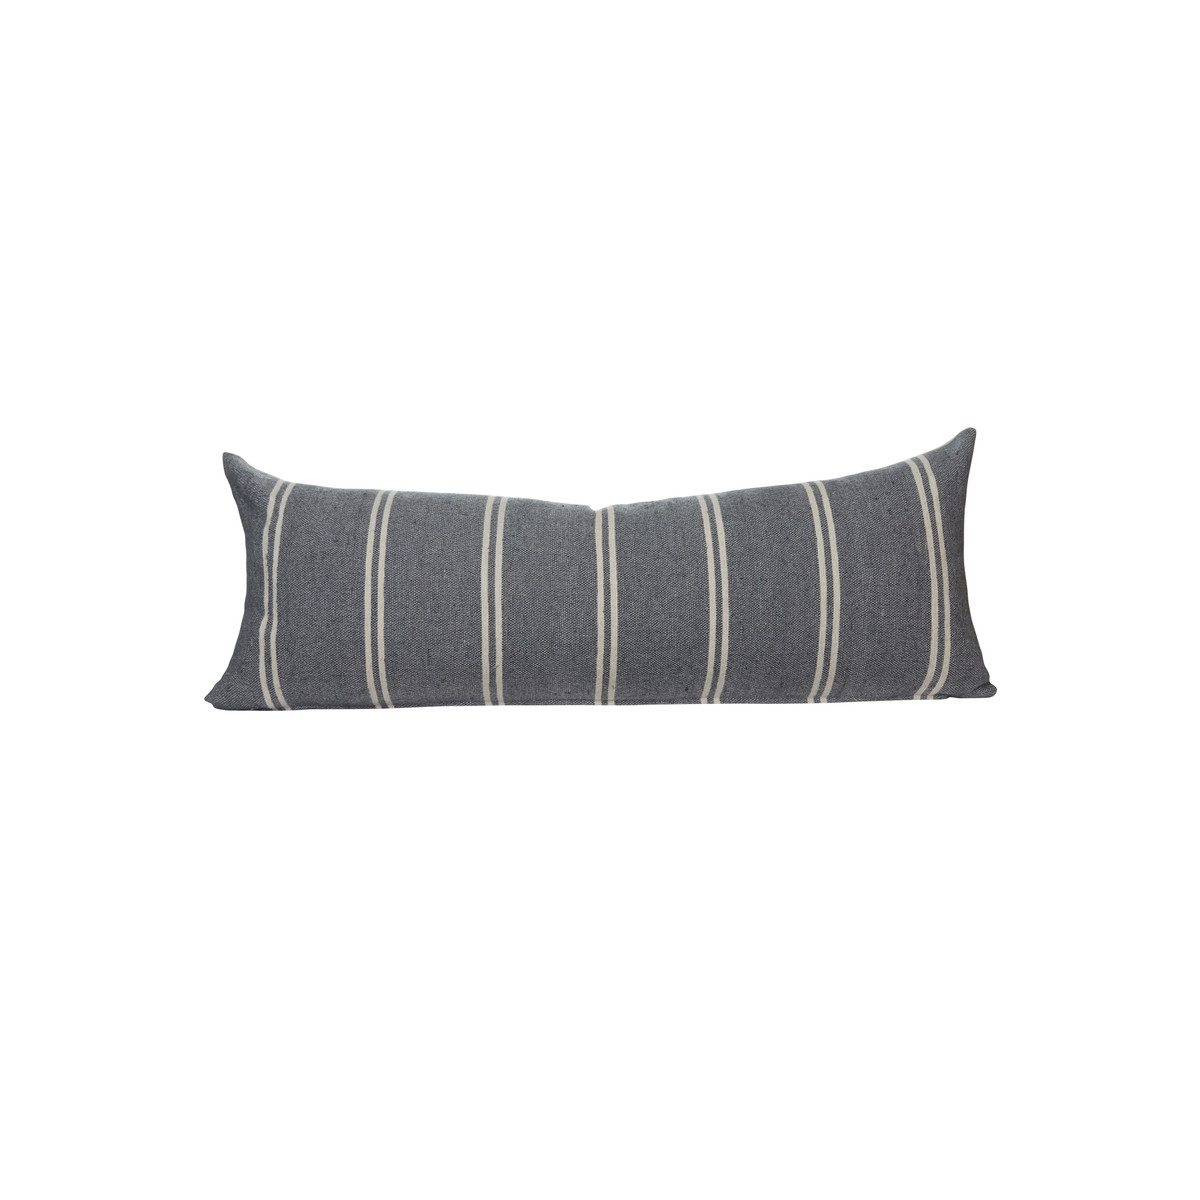 French Gray Capri Stripe  14 x 36 Decorative Lumbar - Front